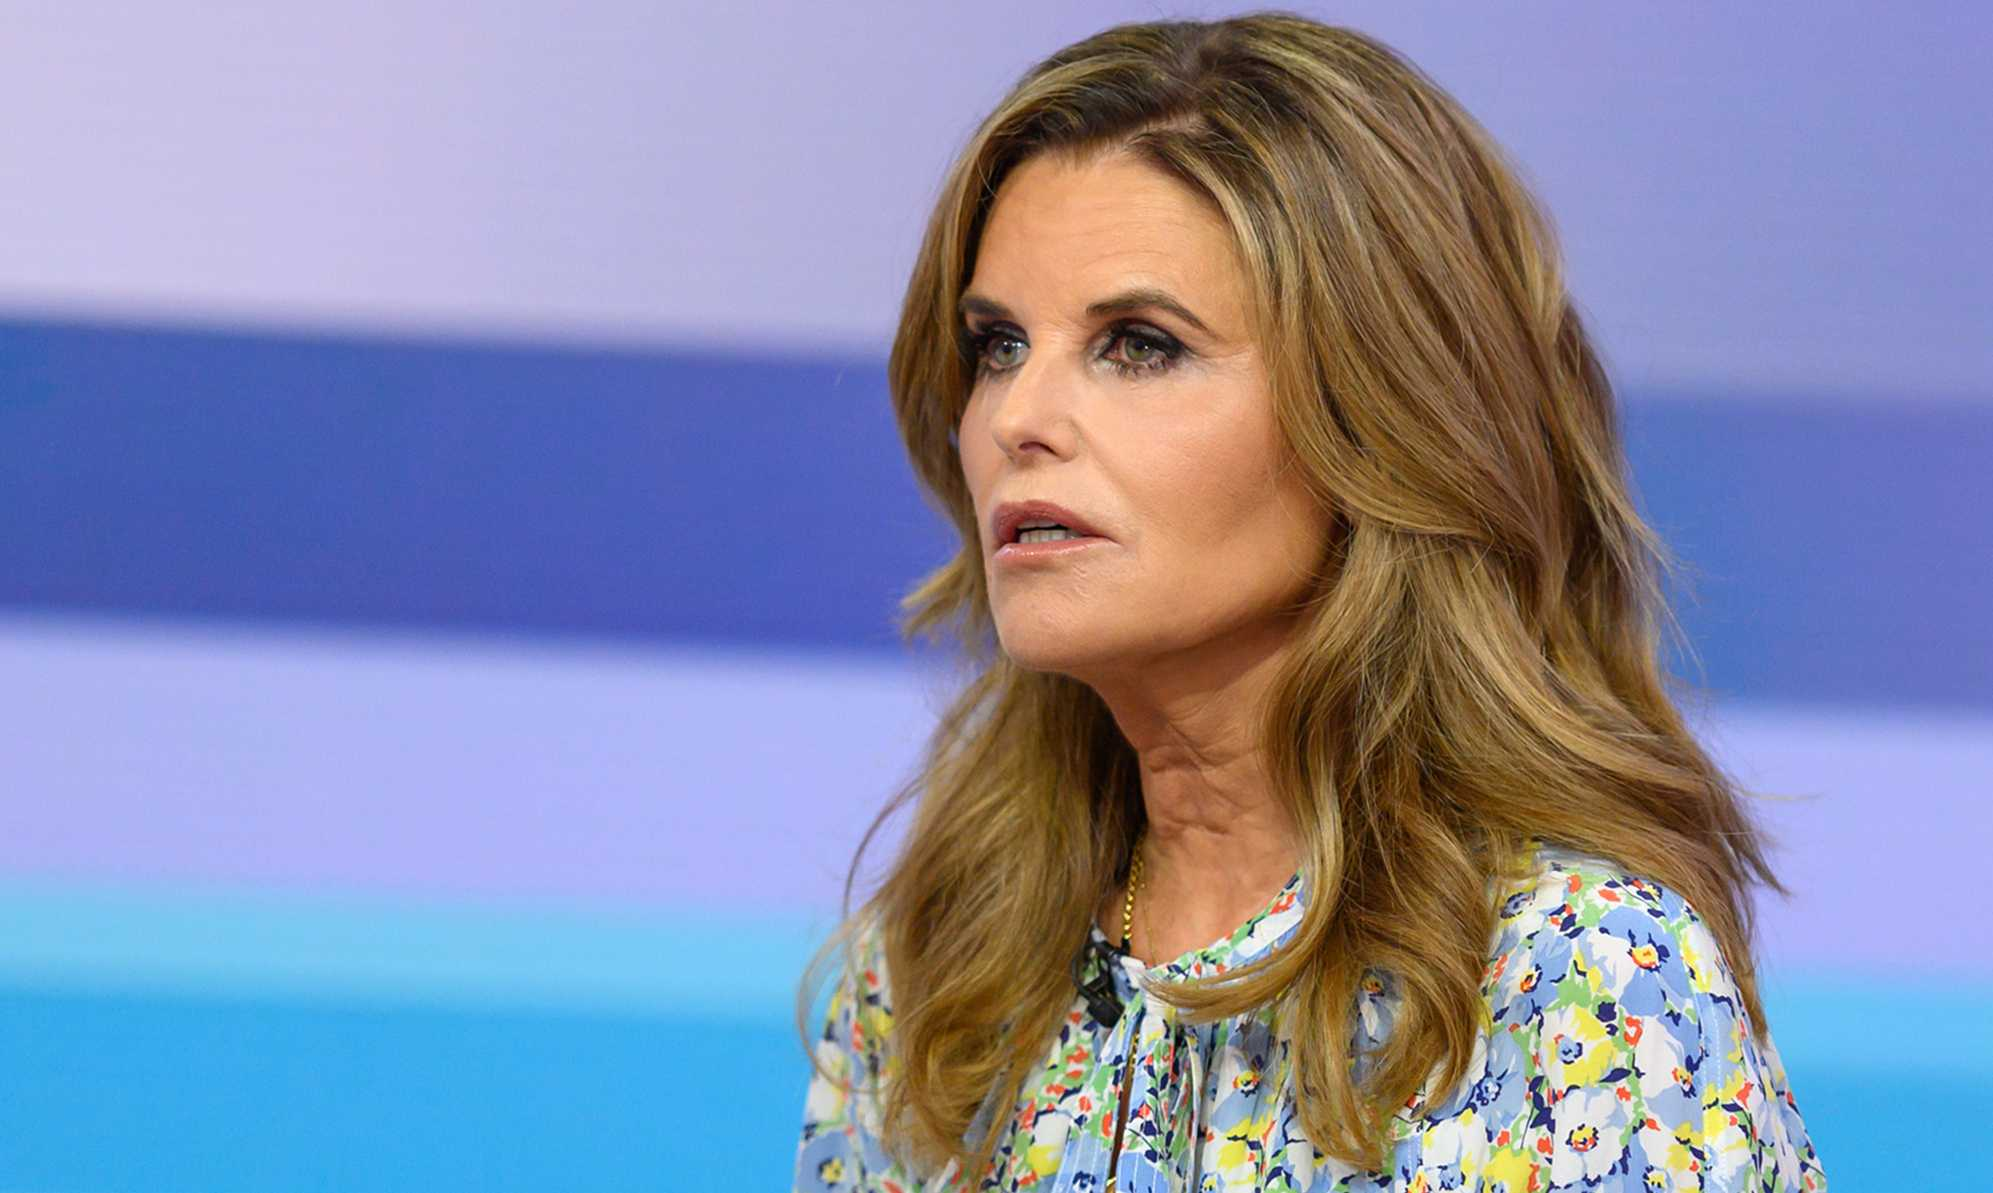 Maria Shriver Famous For